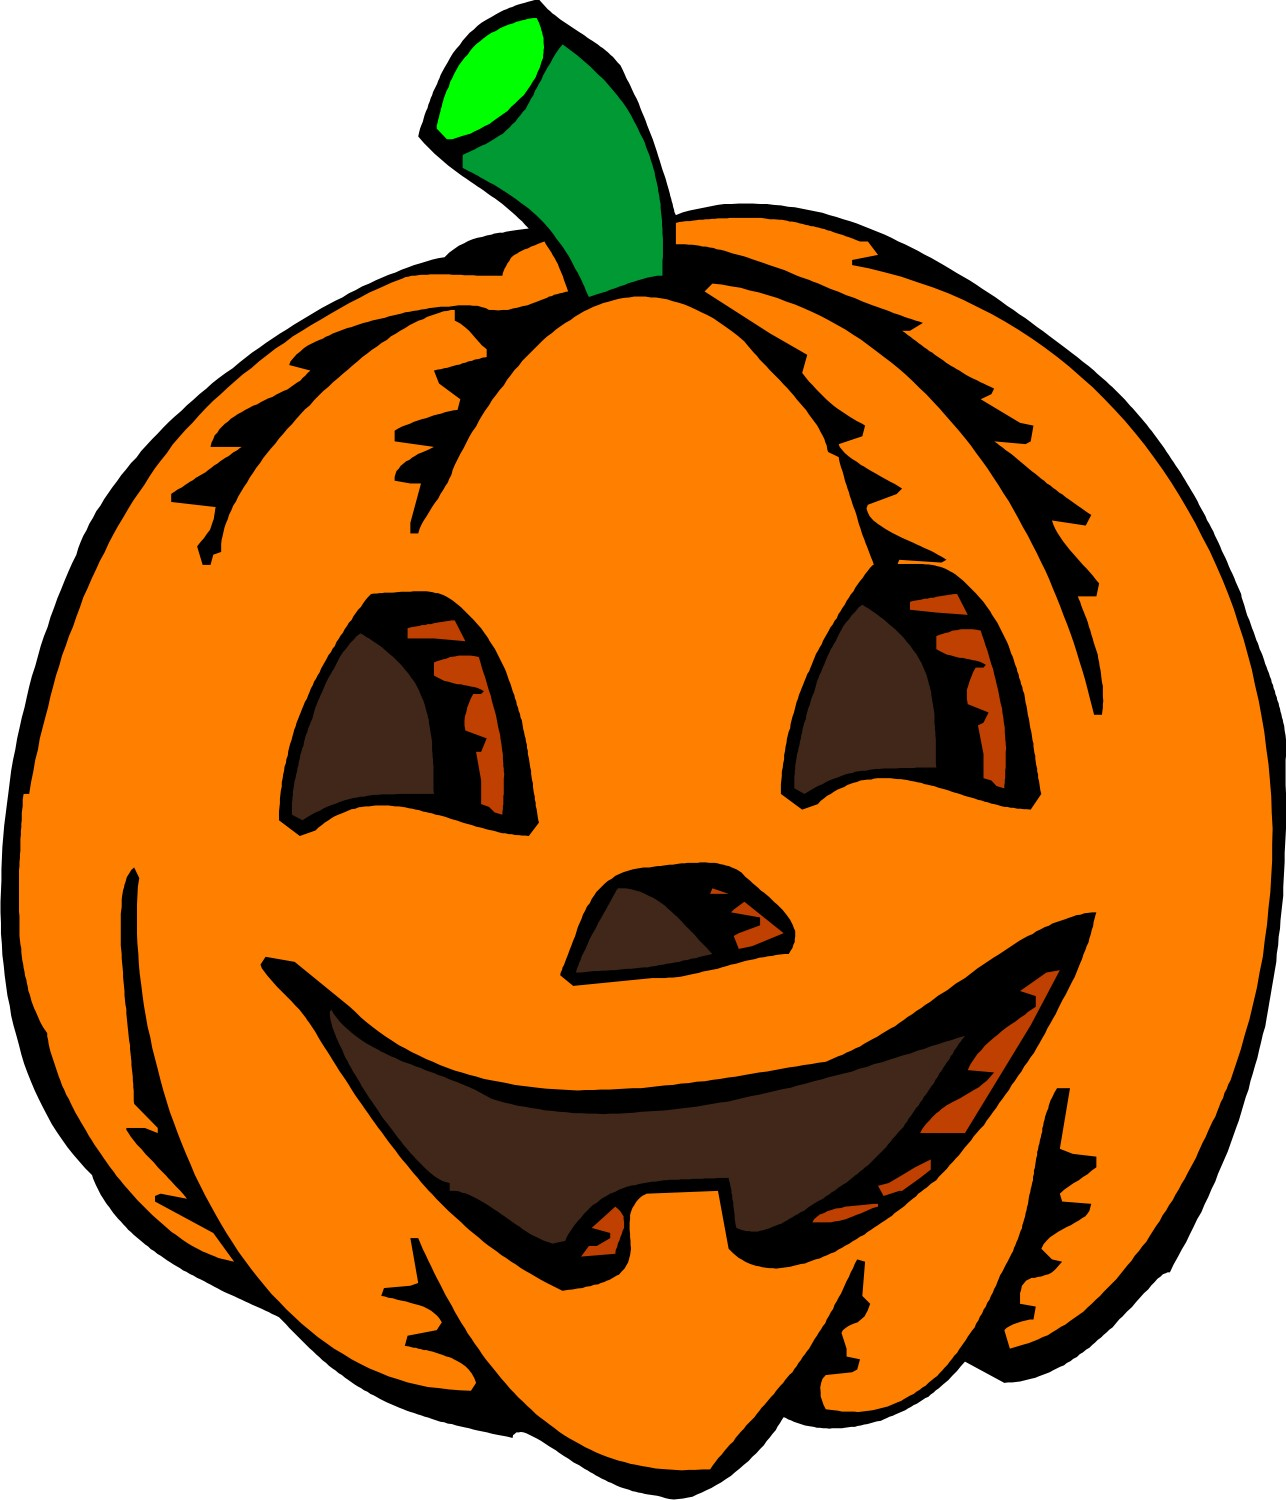 Pumpkin Clipart For Kids Halloween Pumpkin Clipart 7 Jpg